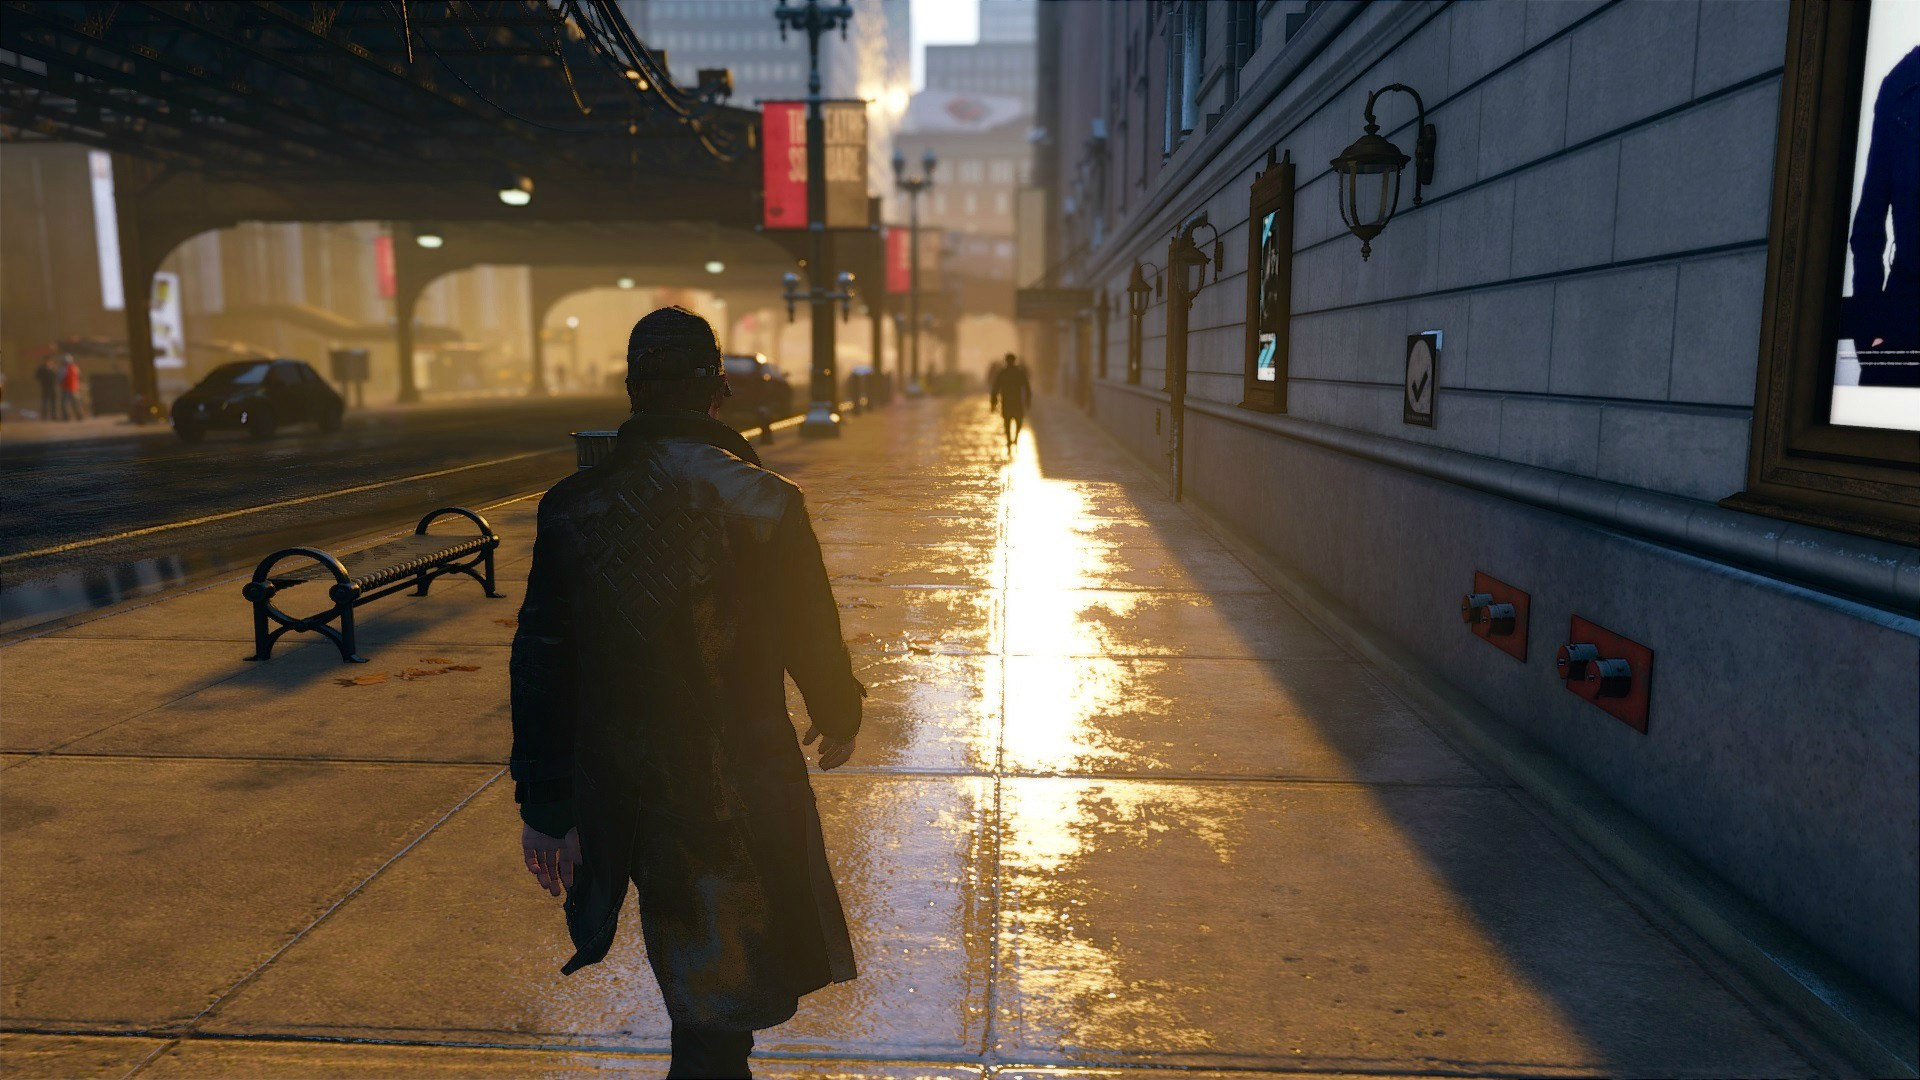 Watch Dogs modder releases final version of his PC graphics overhaul, TheWorse Mod